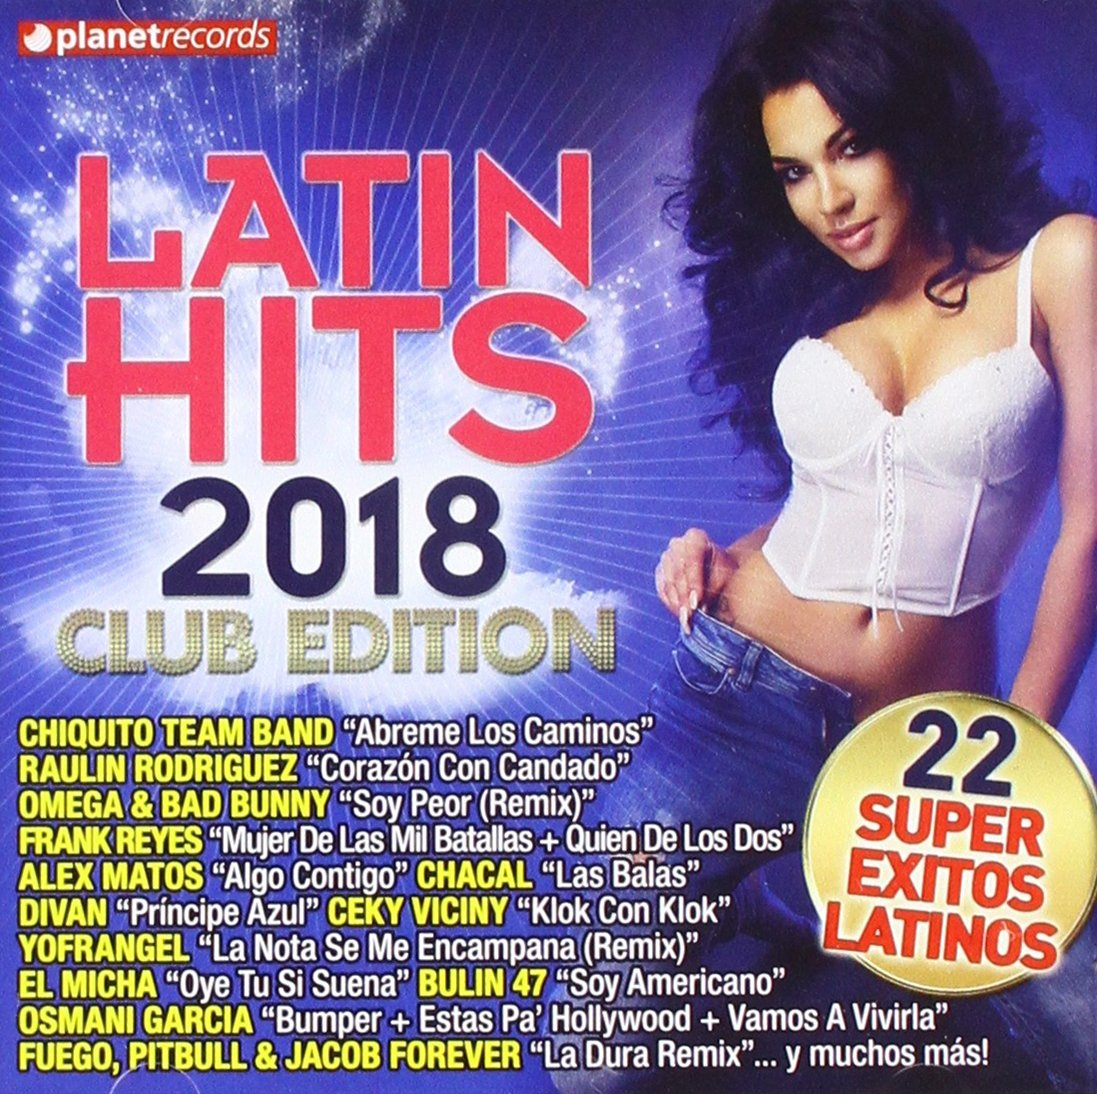 Latin Hits 2018 by Planet Records (Soh)